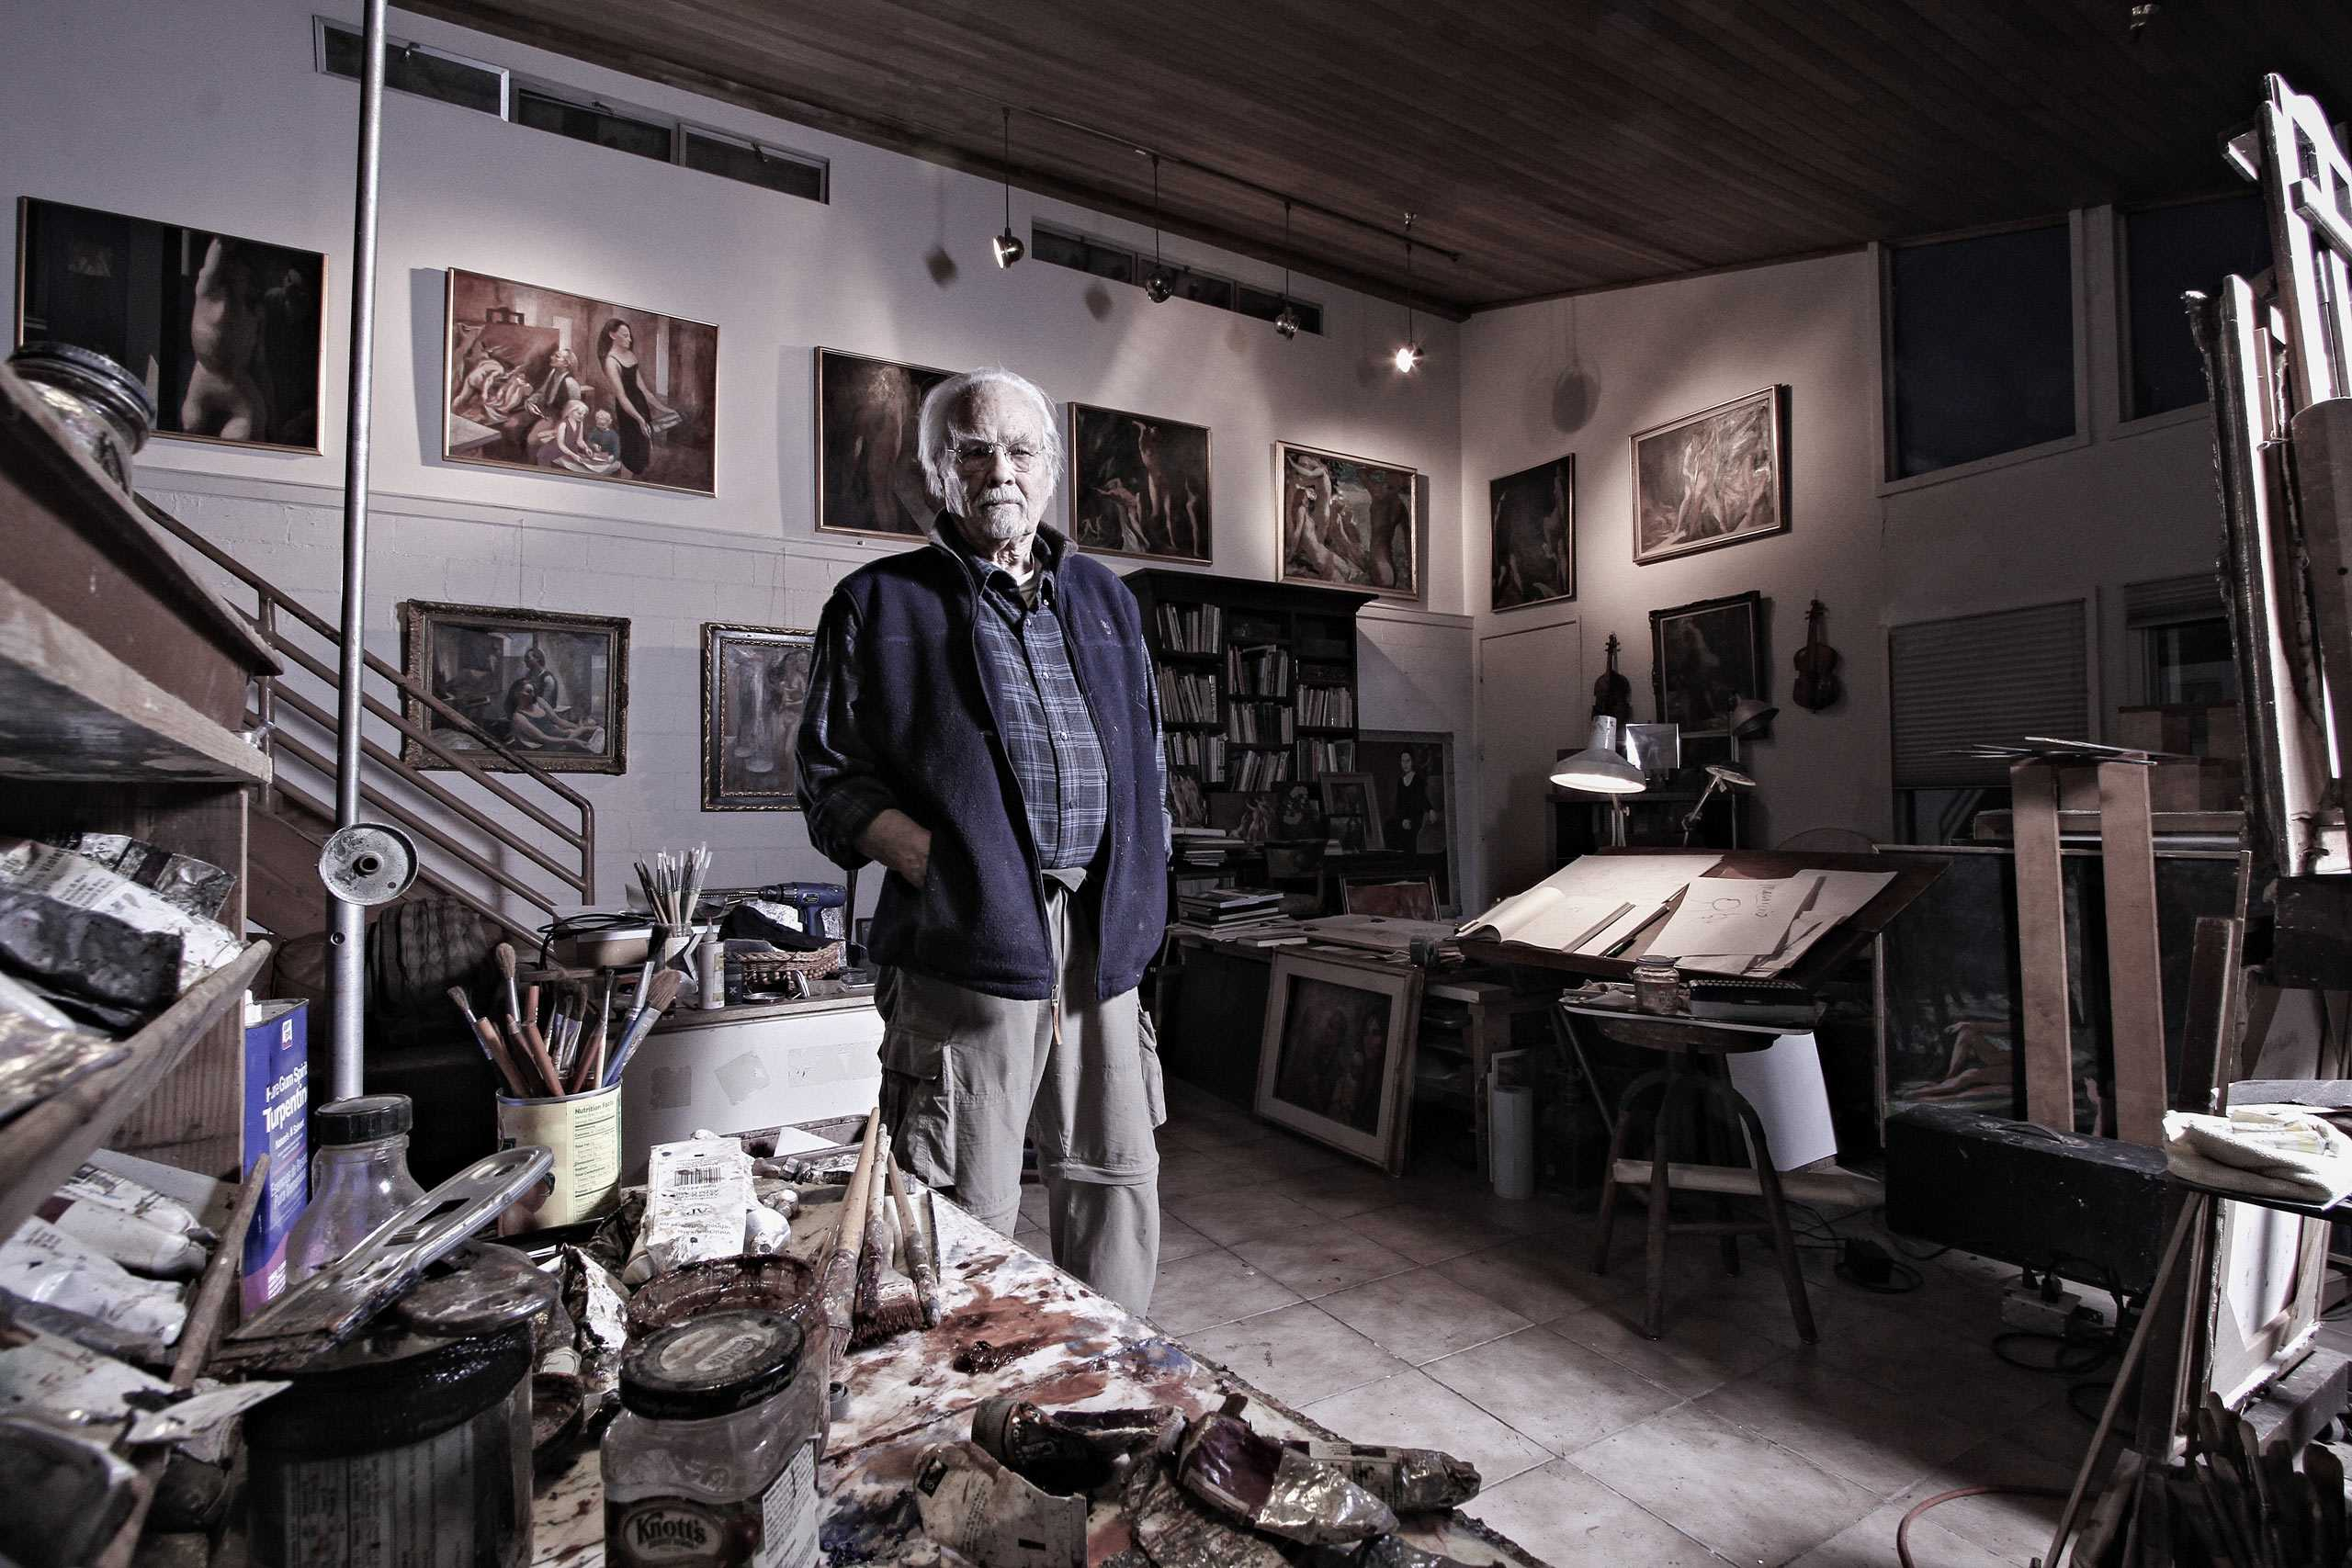 Fine Artist/ Painter Harry Carmean photographed in his studio for The Artist Within portrait project